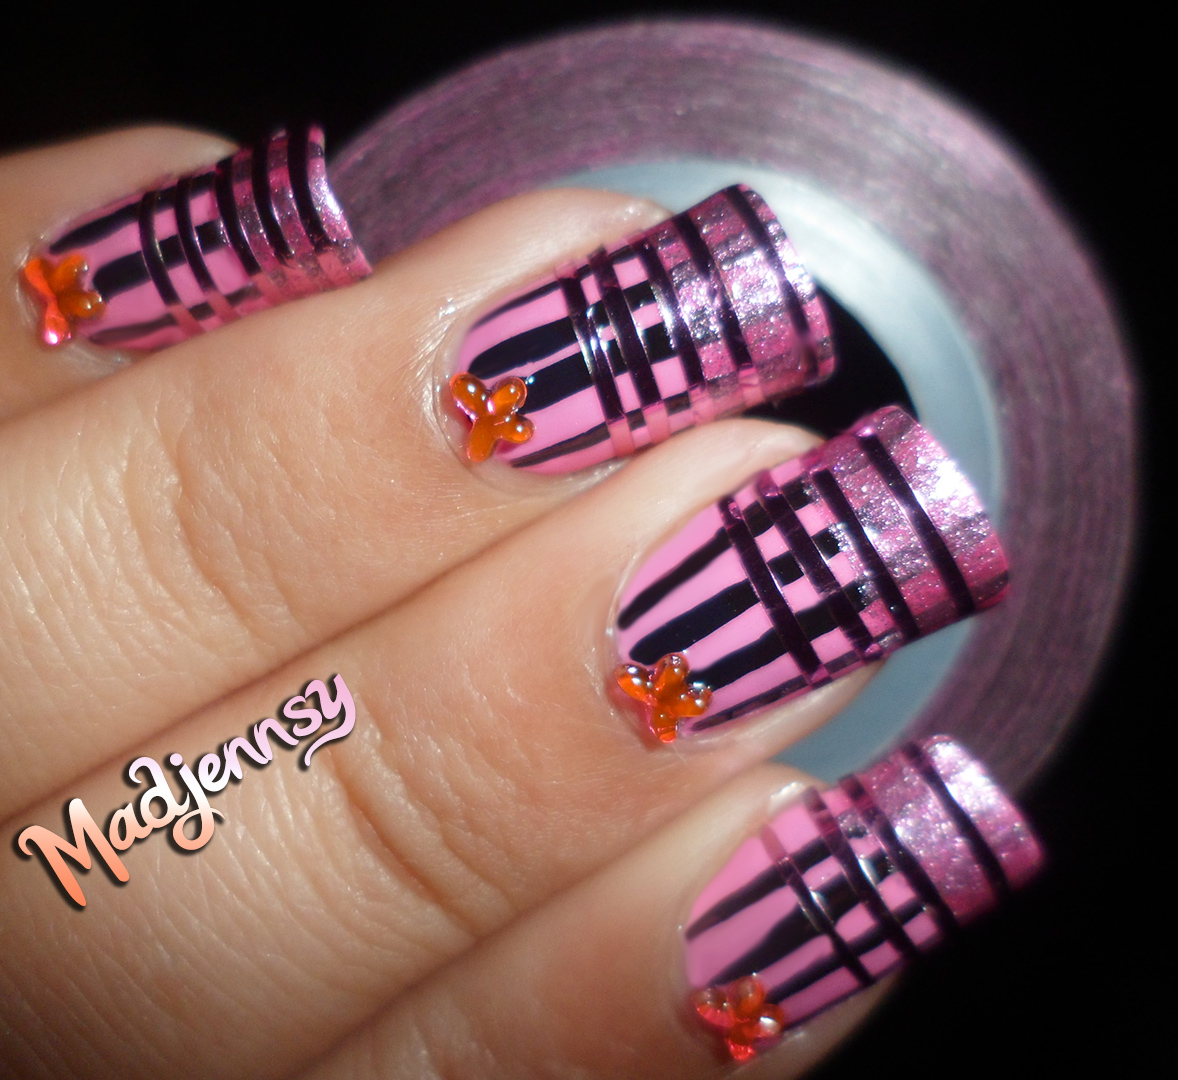 Nail Art Using Striping Tape: Madjennsy Nail Art!: Pink Striped Nails